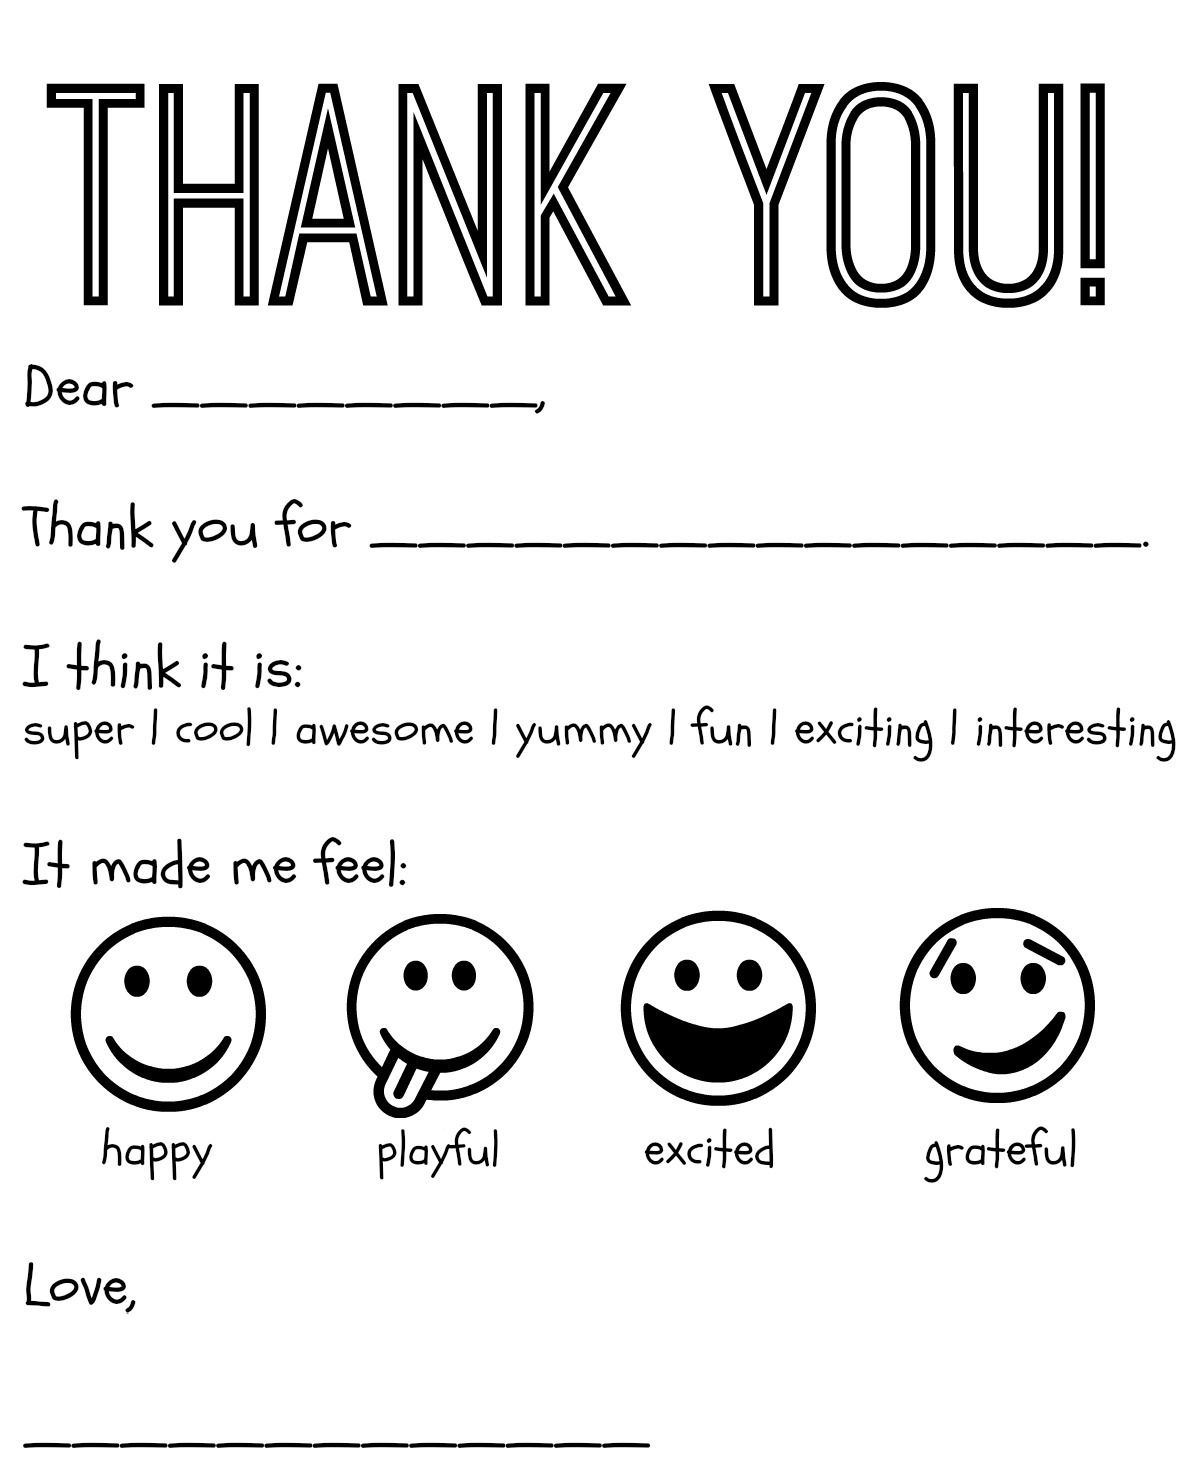 Free Printable Kids Thank You Cards To Color | Thank You Card - Free Printable Thank You Cards For Soldiers